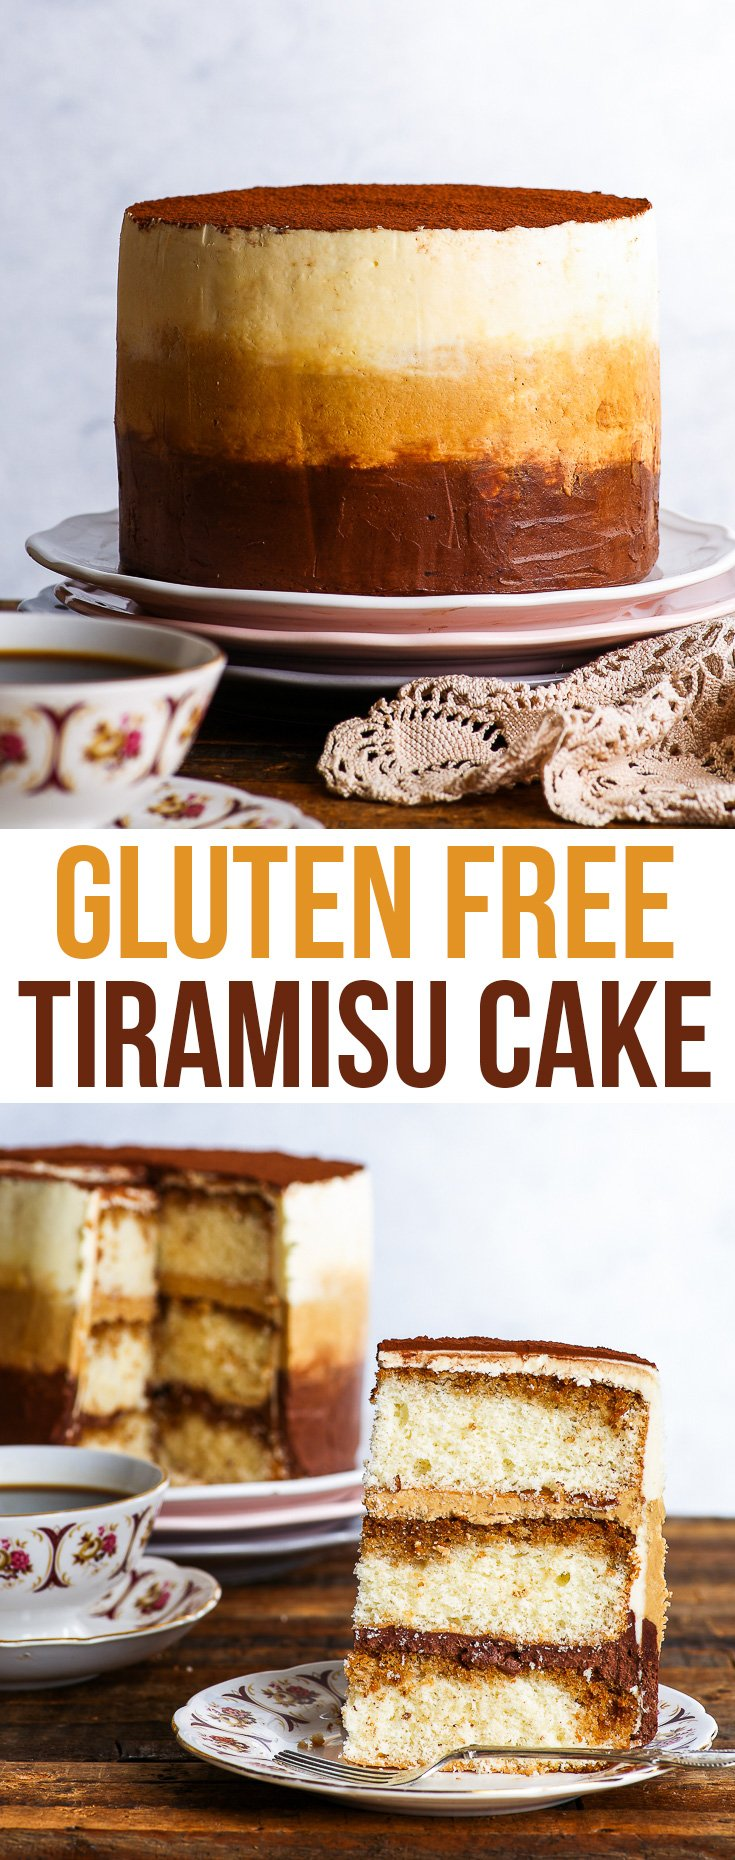 Gluten Free Tiramisu Cake - This gluten free tiramisu cake is a celebration of the best chocolate + coffee dessert out there: the one and only tiramisu. With fluffy gluten free genoise sponge generously soaked with coffee and a super pretty ombre mascarpone buttercream frosting, this gluten free layer cake couldn't be prettier. Gluten free ombre cake. Tiramisu Ombre cake. #cake #glutenfree #chocolate #coffee #dessert #tiramisu